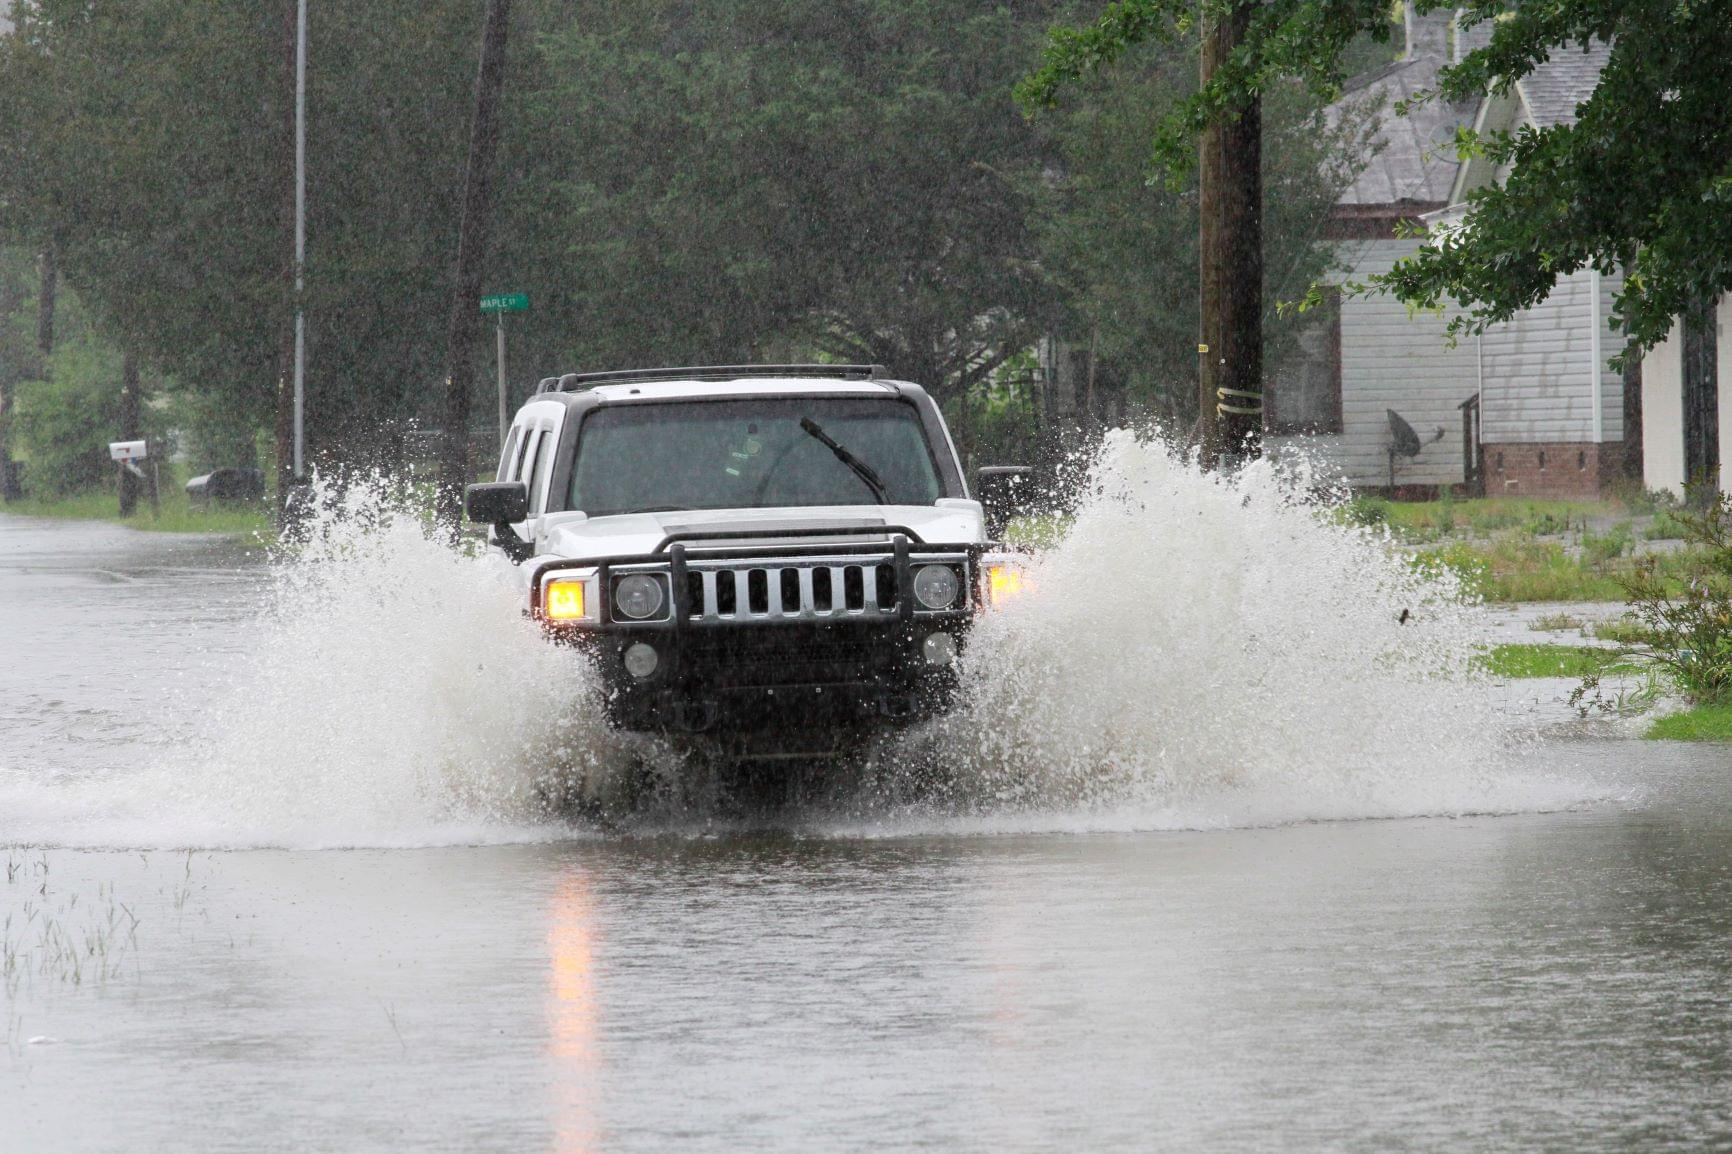 Flooded Roads Slow Travel In Southern Wayne County (PHOTOS)